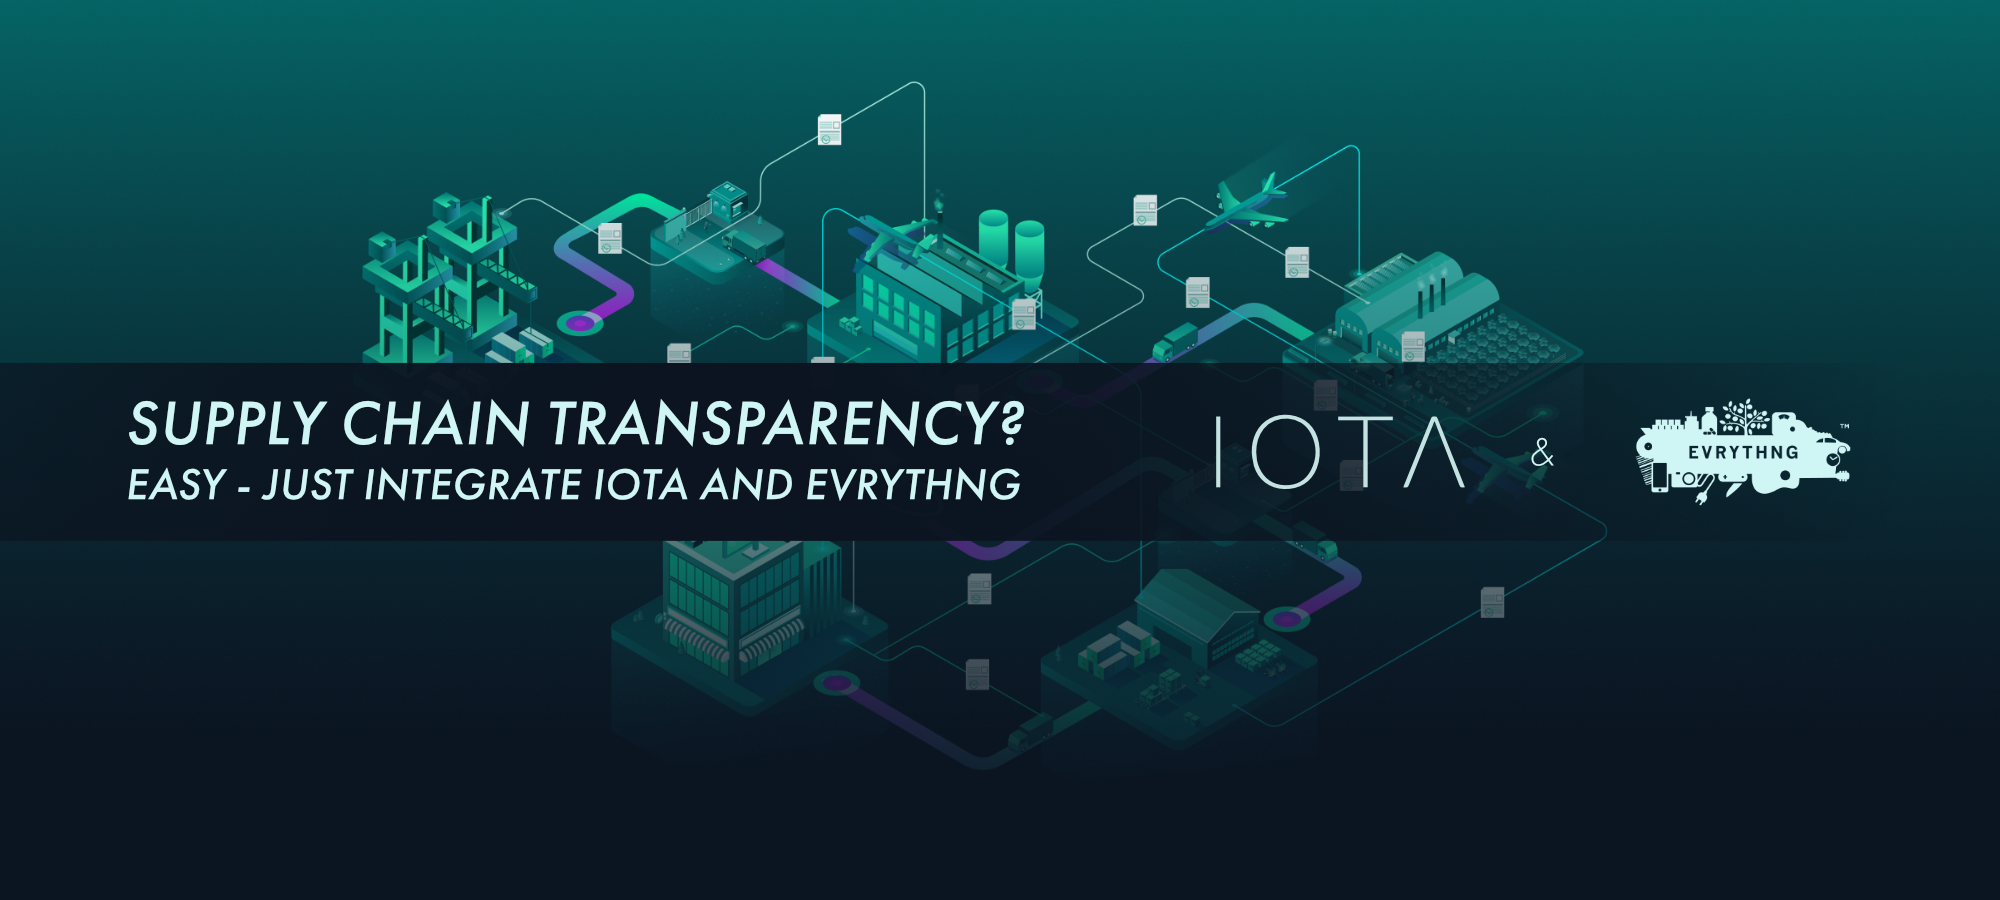 iota.org - Michele Nati, PhD - IOTA and EVRYTHNG Collaboration: This is how you make a transparent supply chain